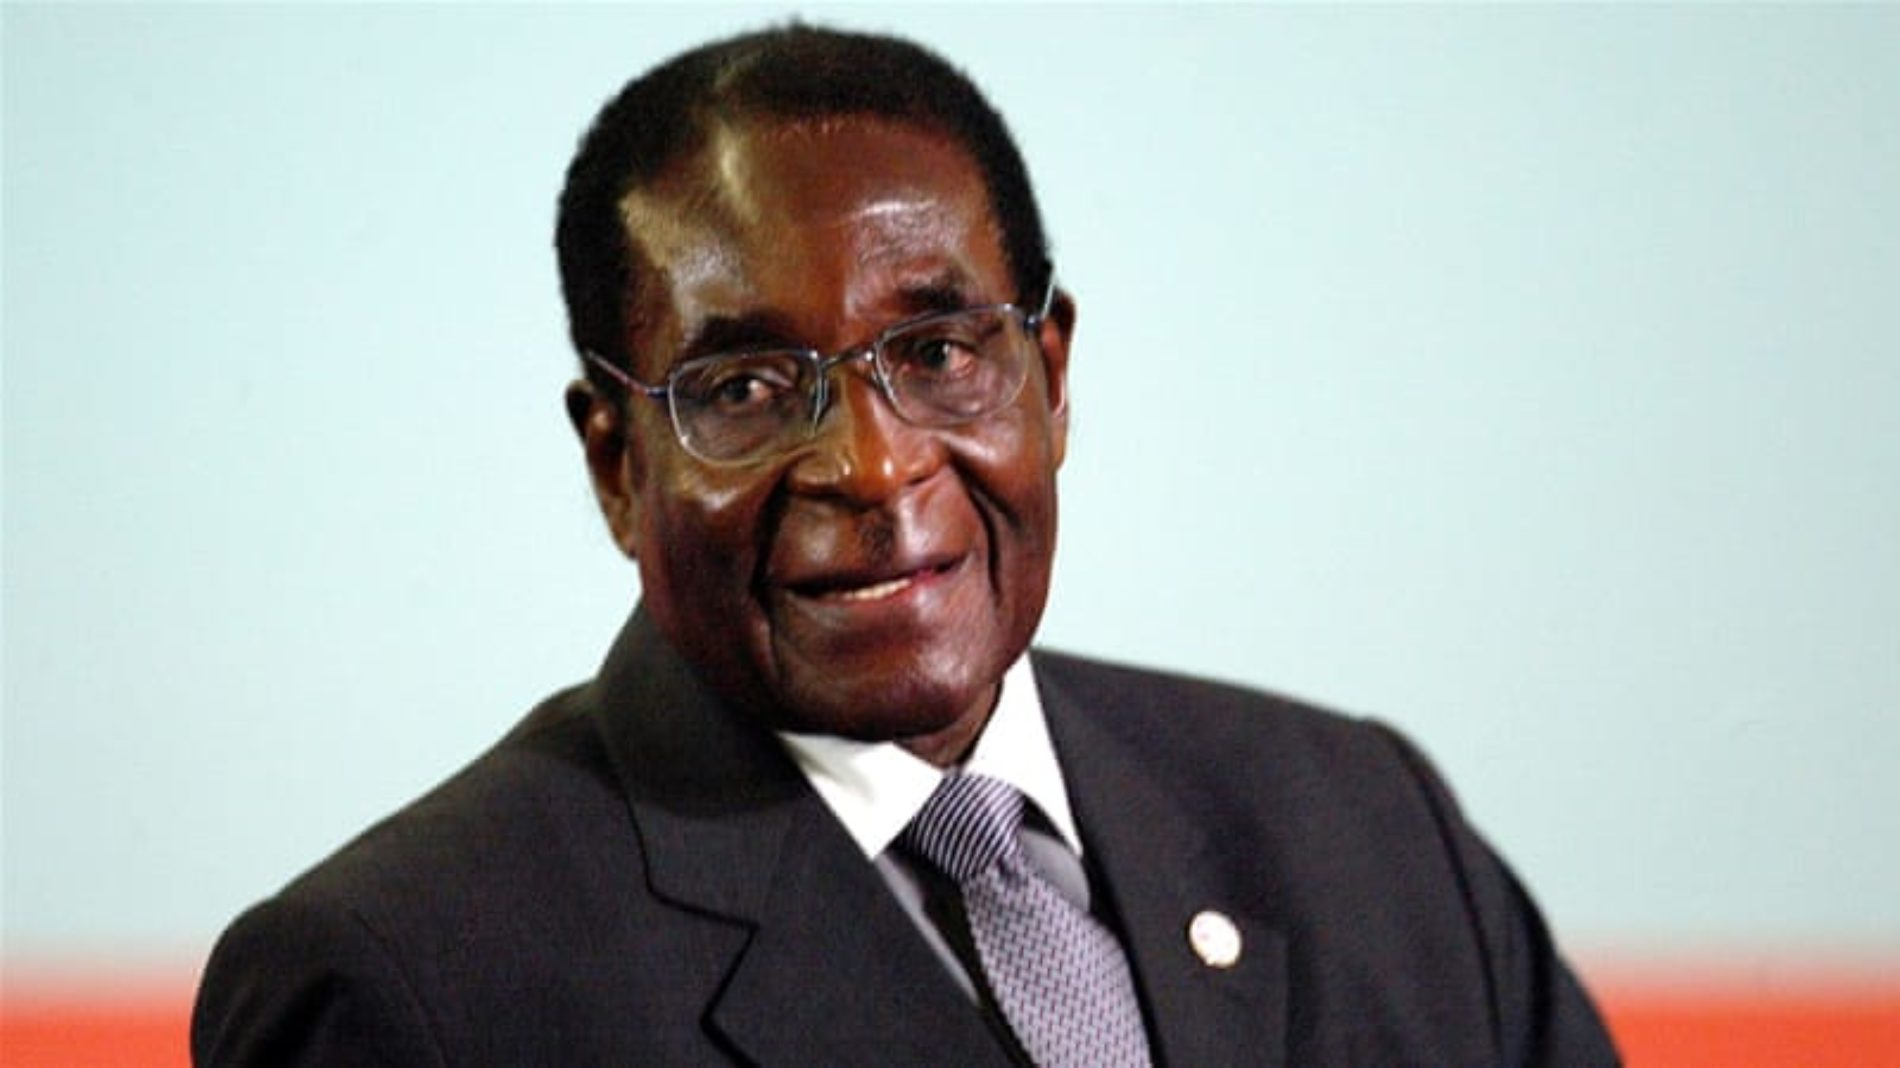 Robert Mugabe resigns as Zimbabwe's president